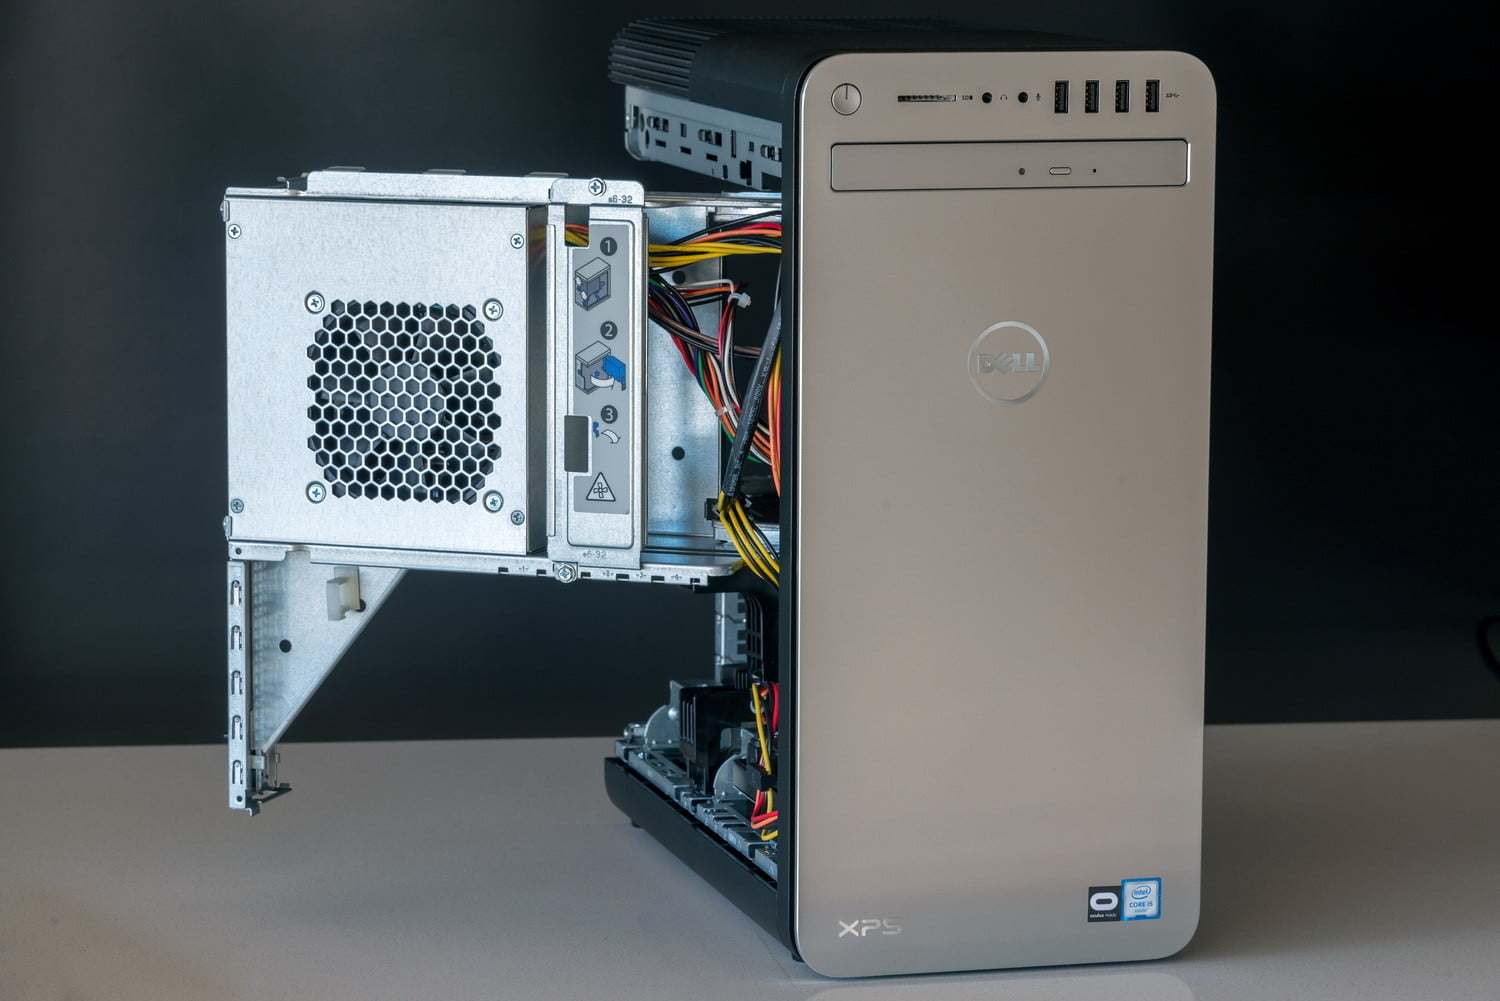 dell xps tower review 2017